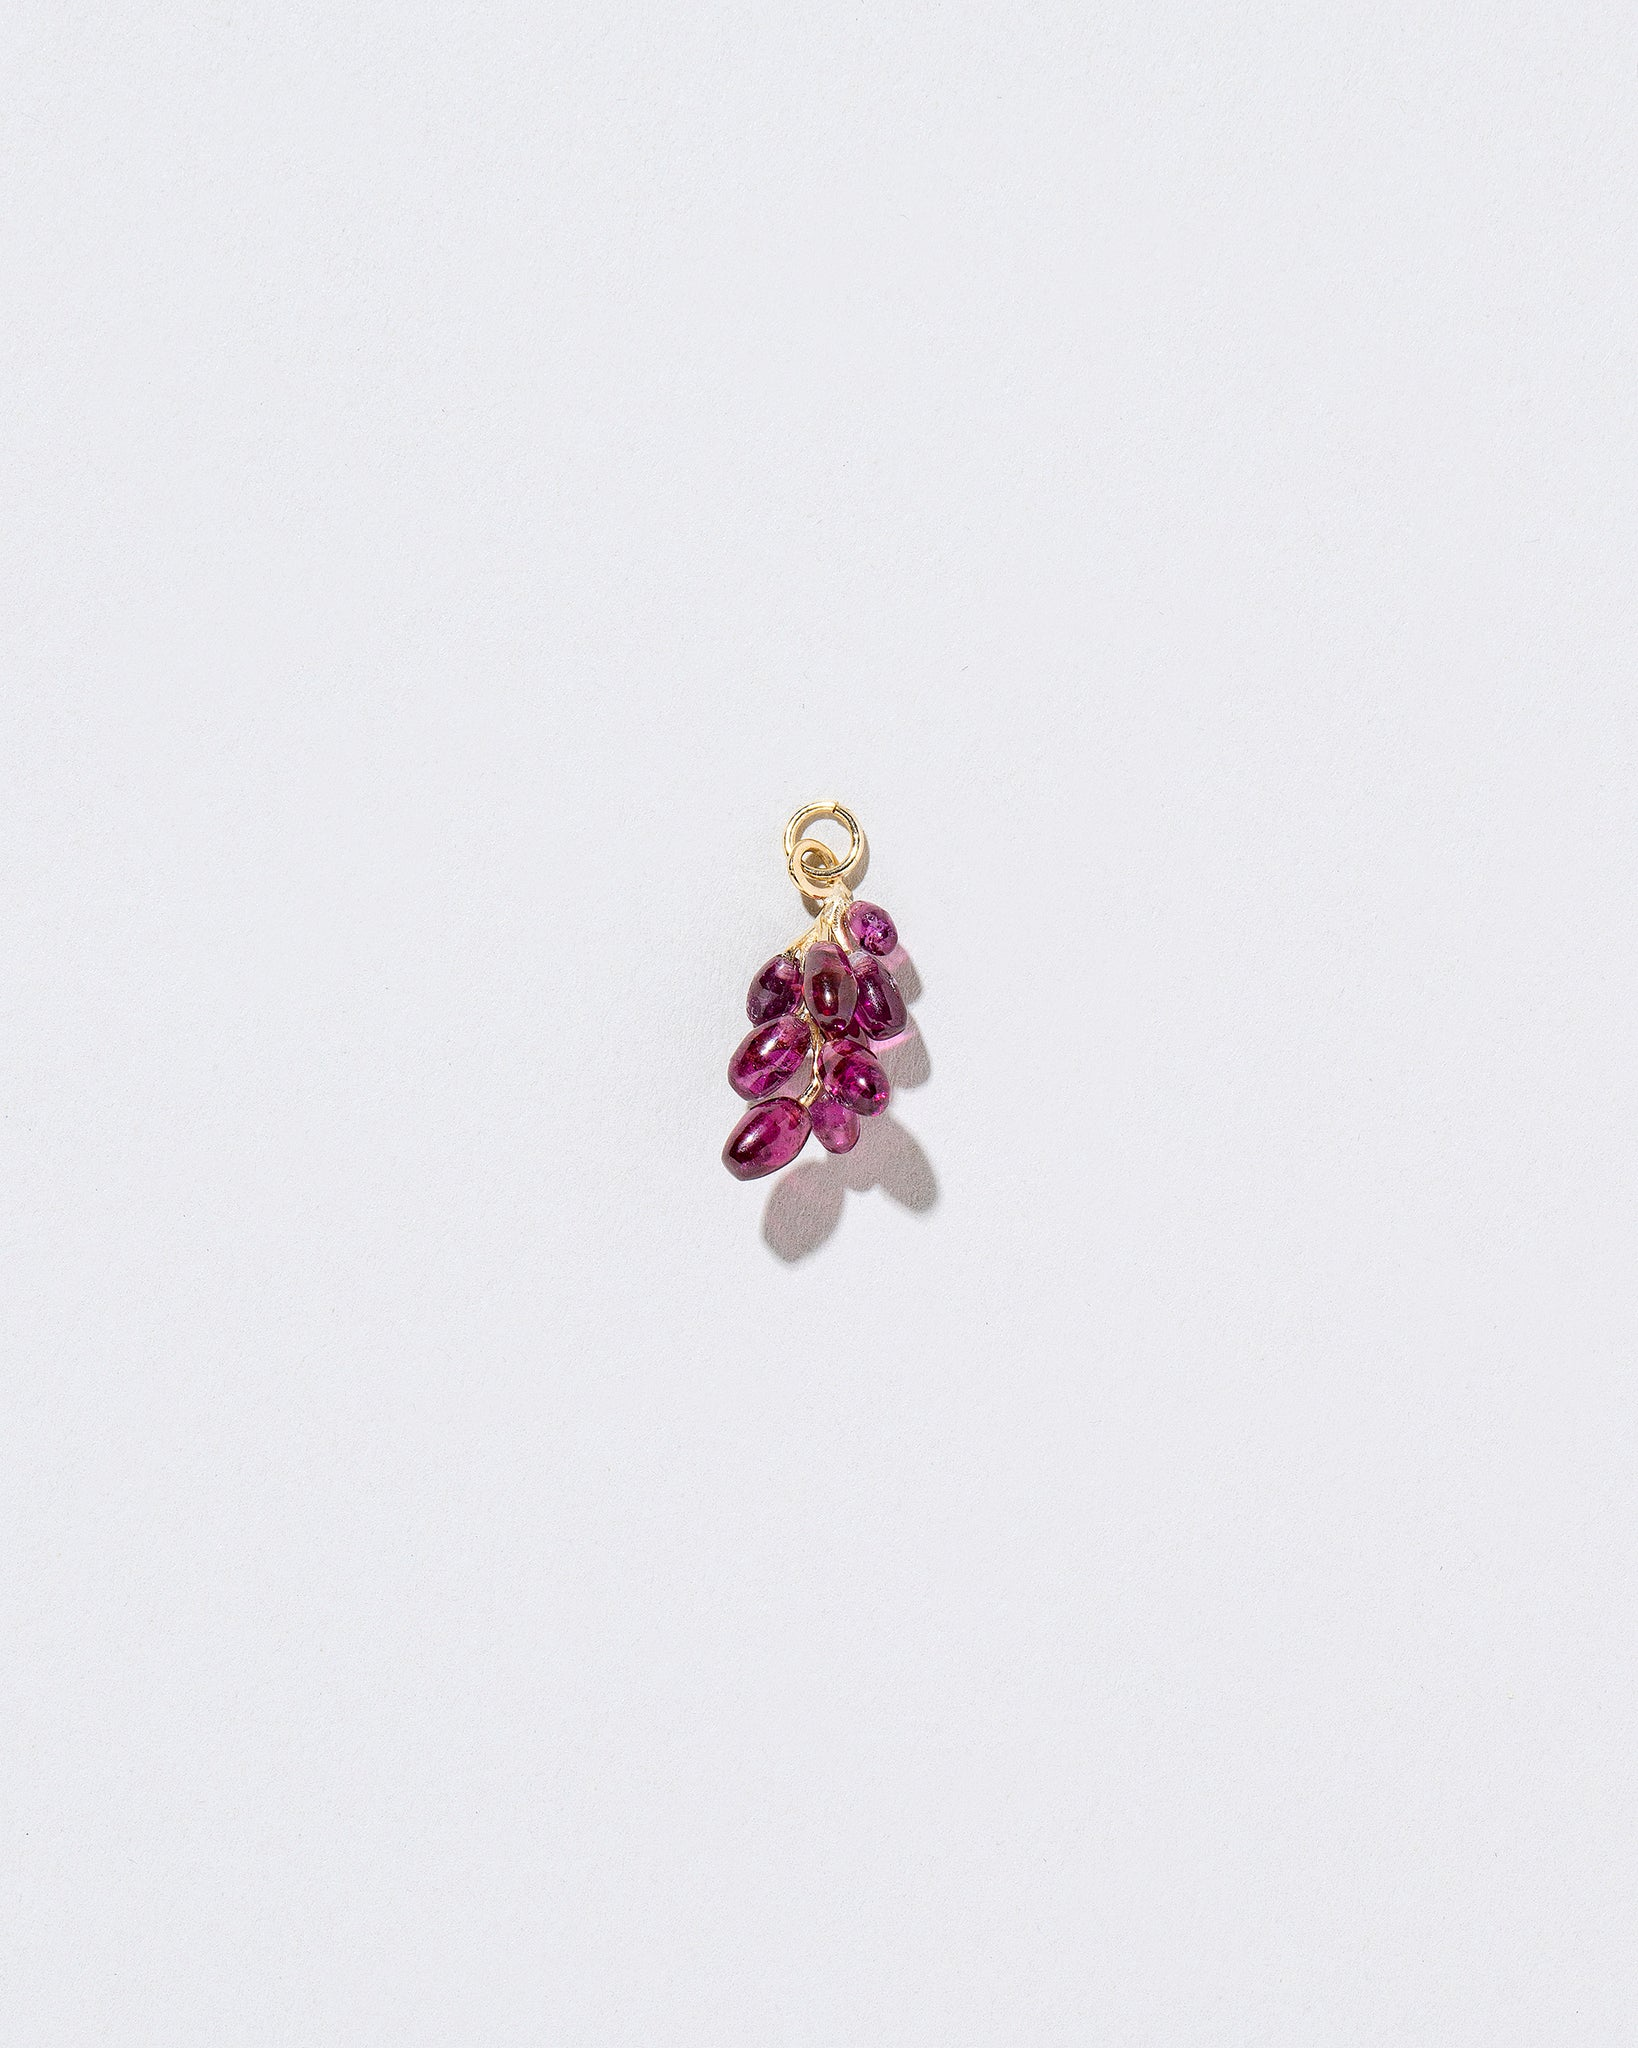 Grape charm on necklace